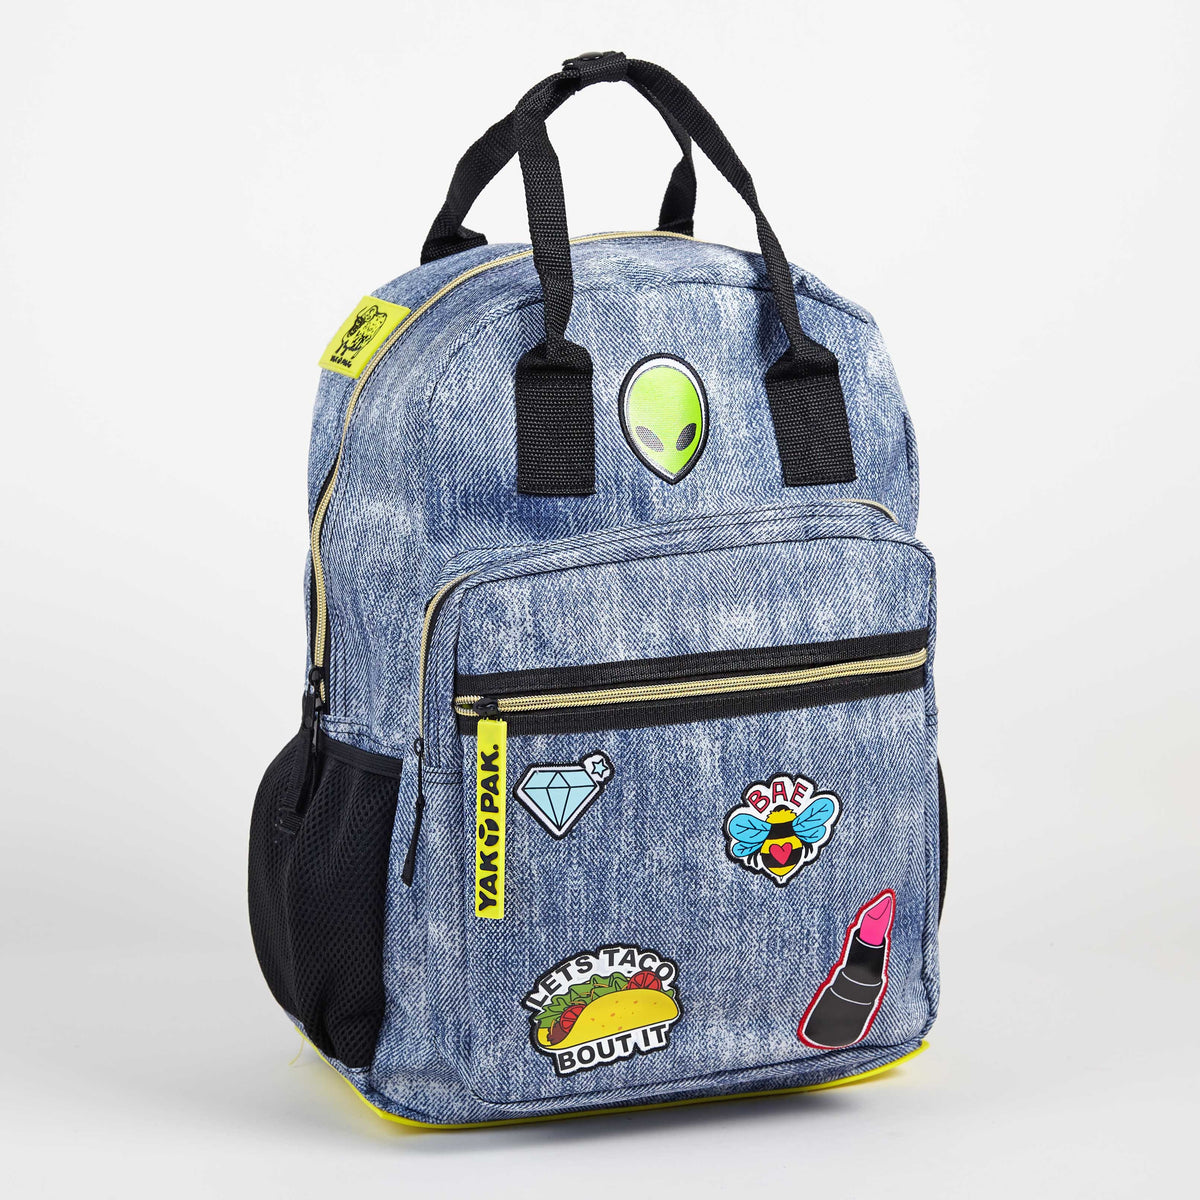 Yak Pak Backpack with Patches